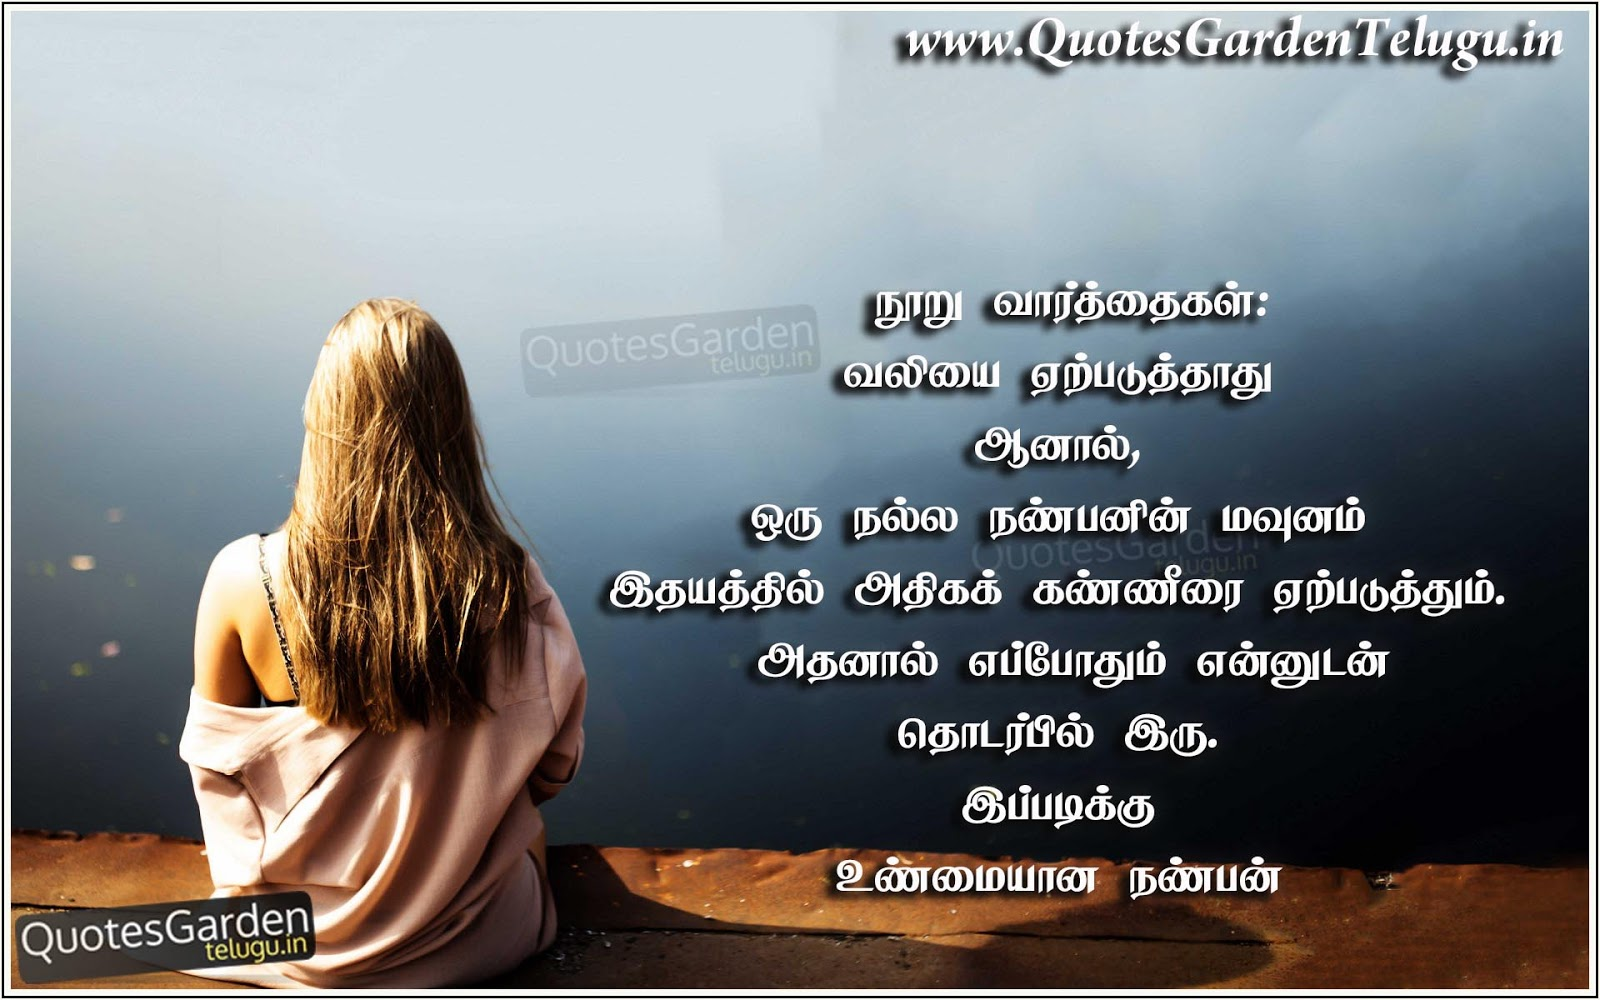 heart touching quotes in tamil quotes garden telugu